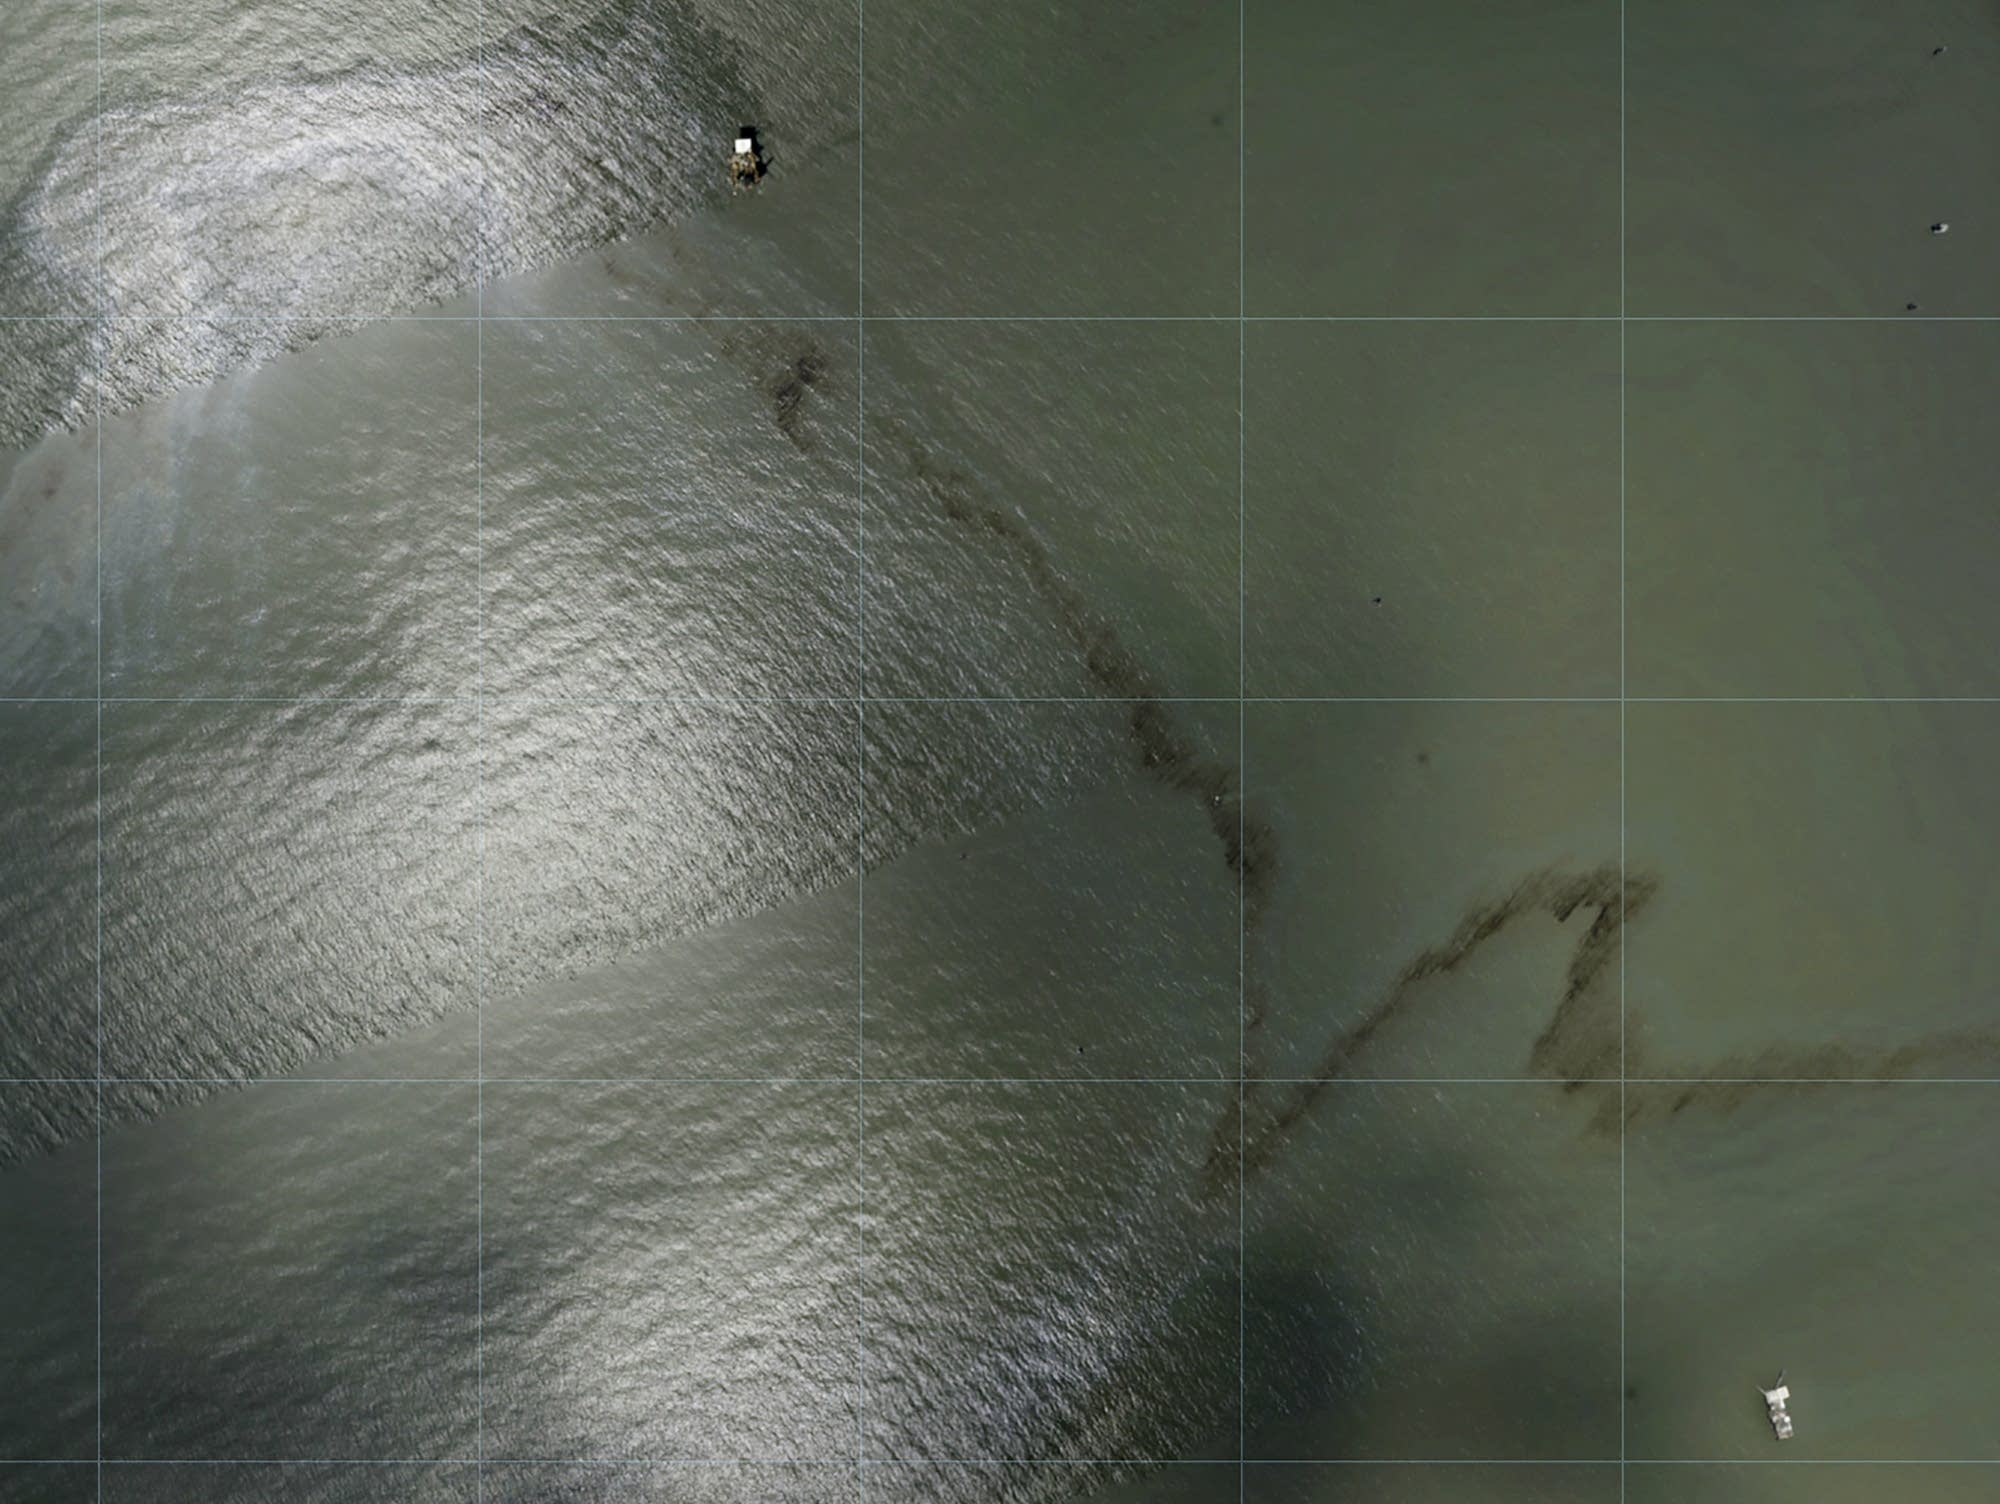 A miles long black slick floating in the Gulf of Mexico near Enterprise Offshore Drilling Rig. Photos via NOAA